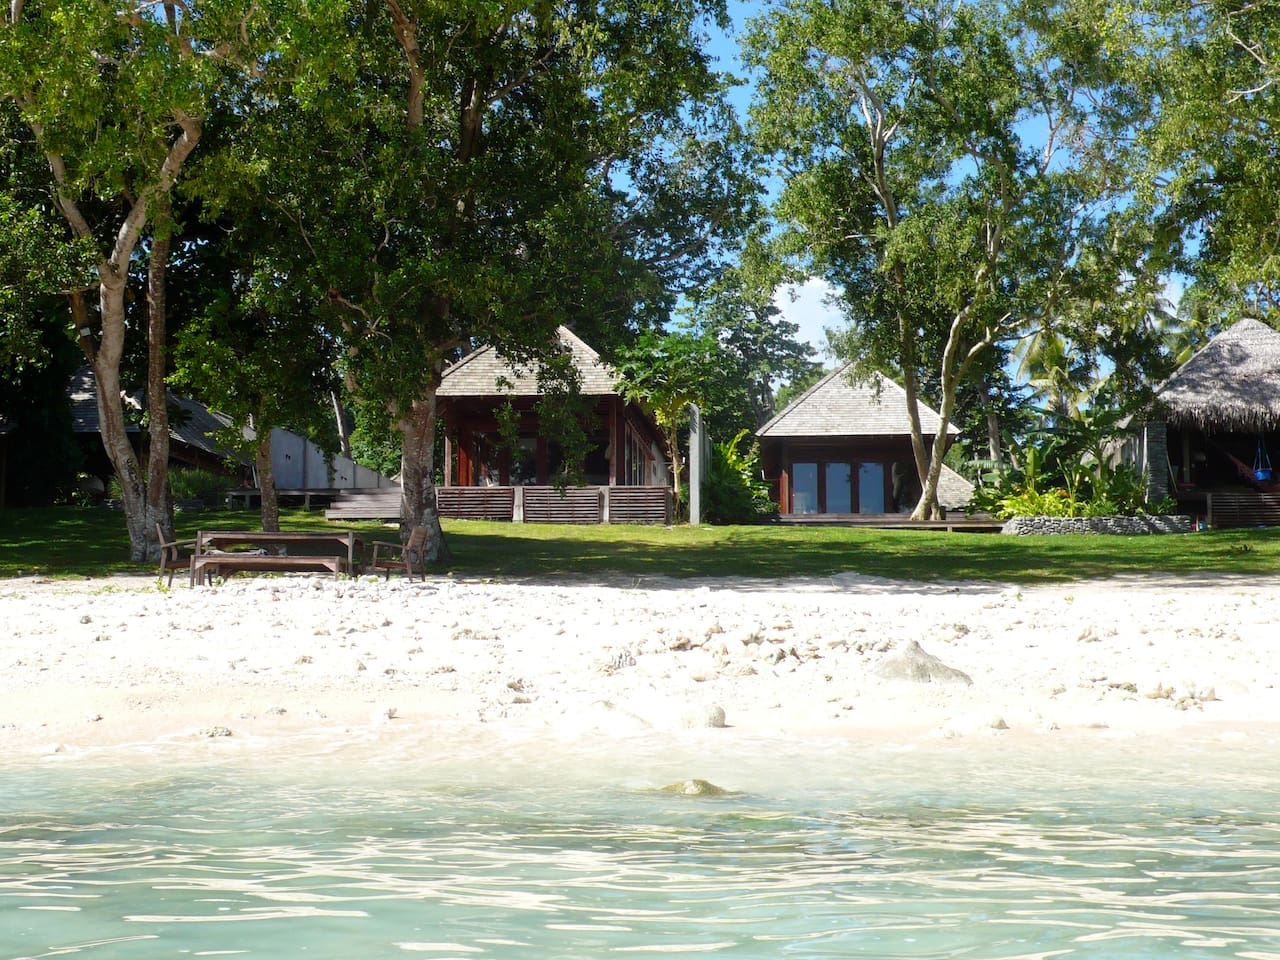 View of Kooyu Villas from beach